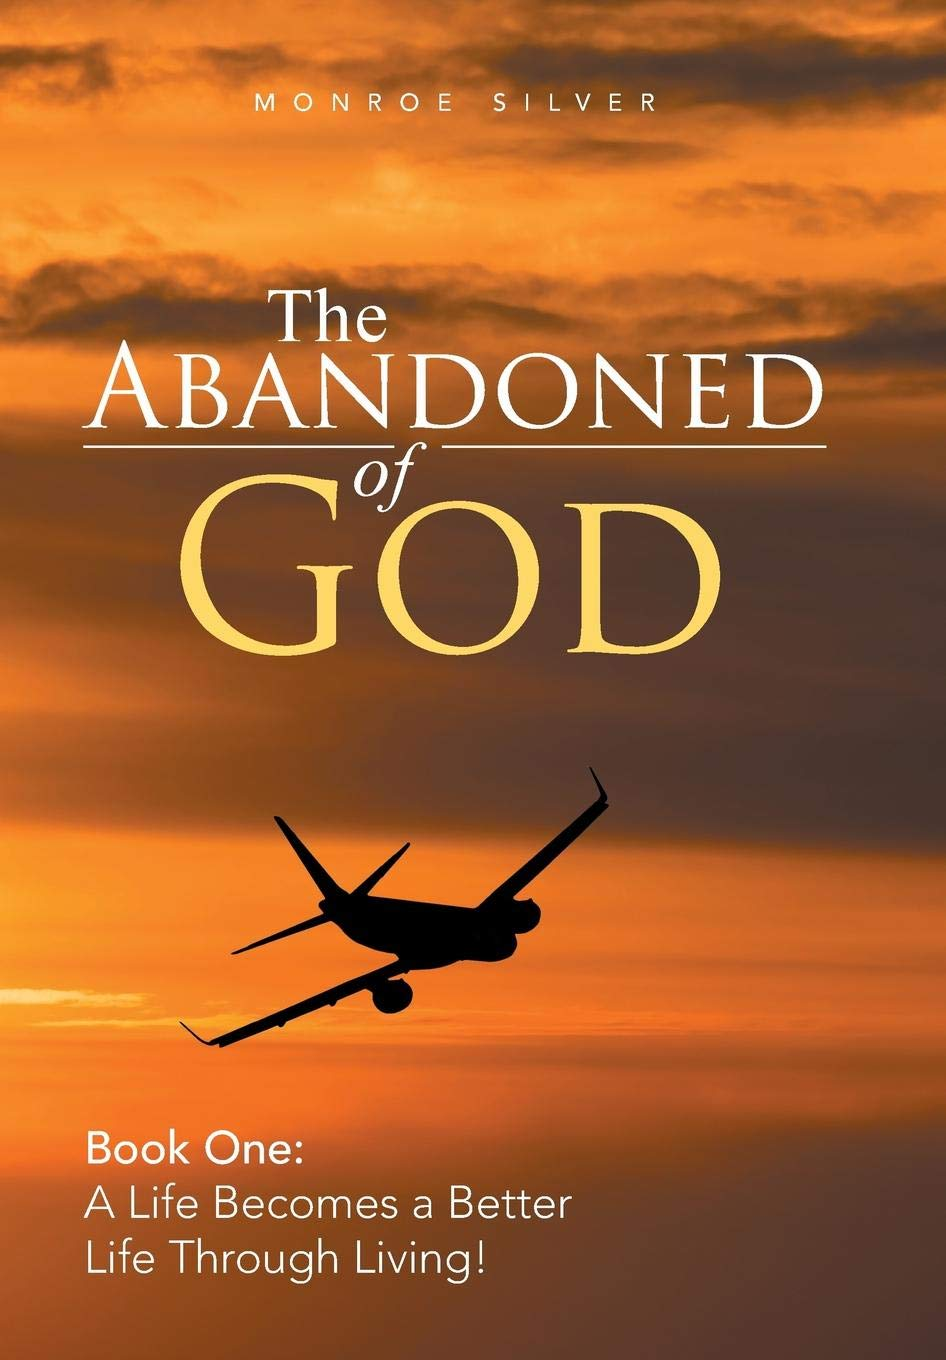 The Abandoned of God: Book One: A Life Becomes a Better Life Through Living! pdf